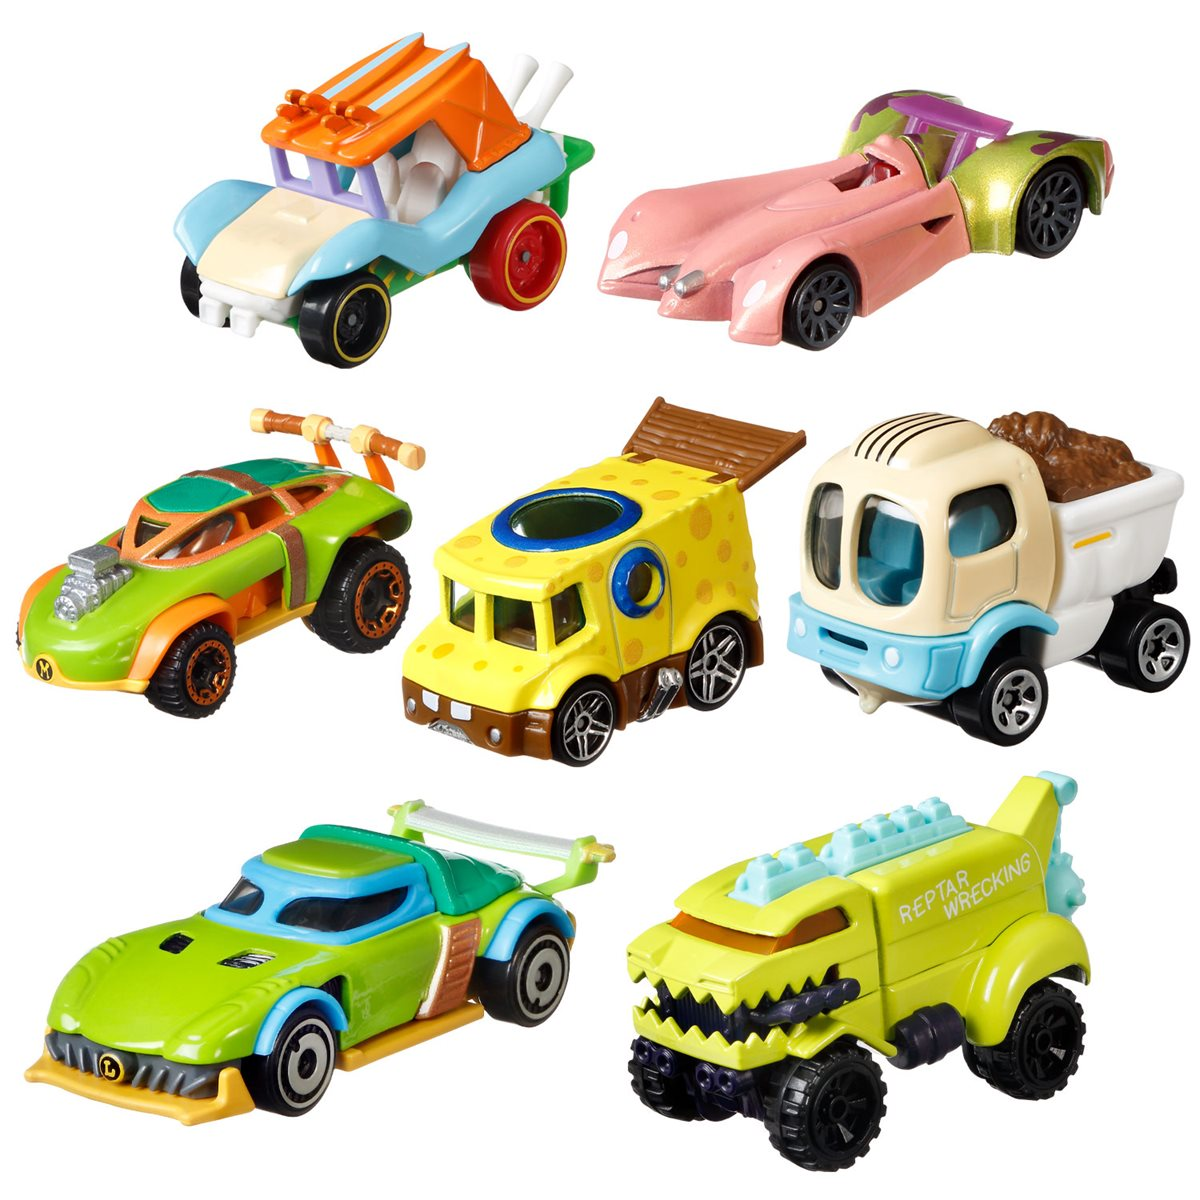 Mattel Unveils Hot Wheels Nickelodeon Character Car 2021 Mix 1 Case Line-Up